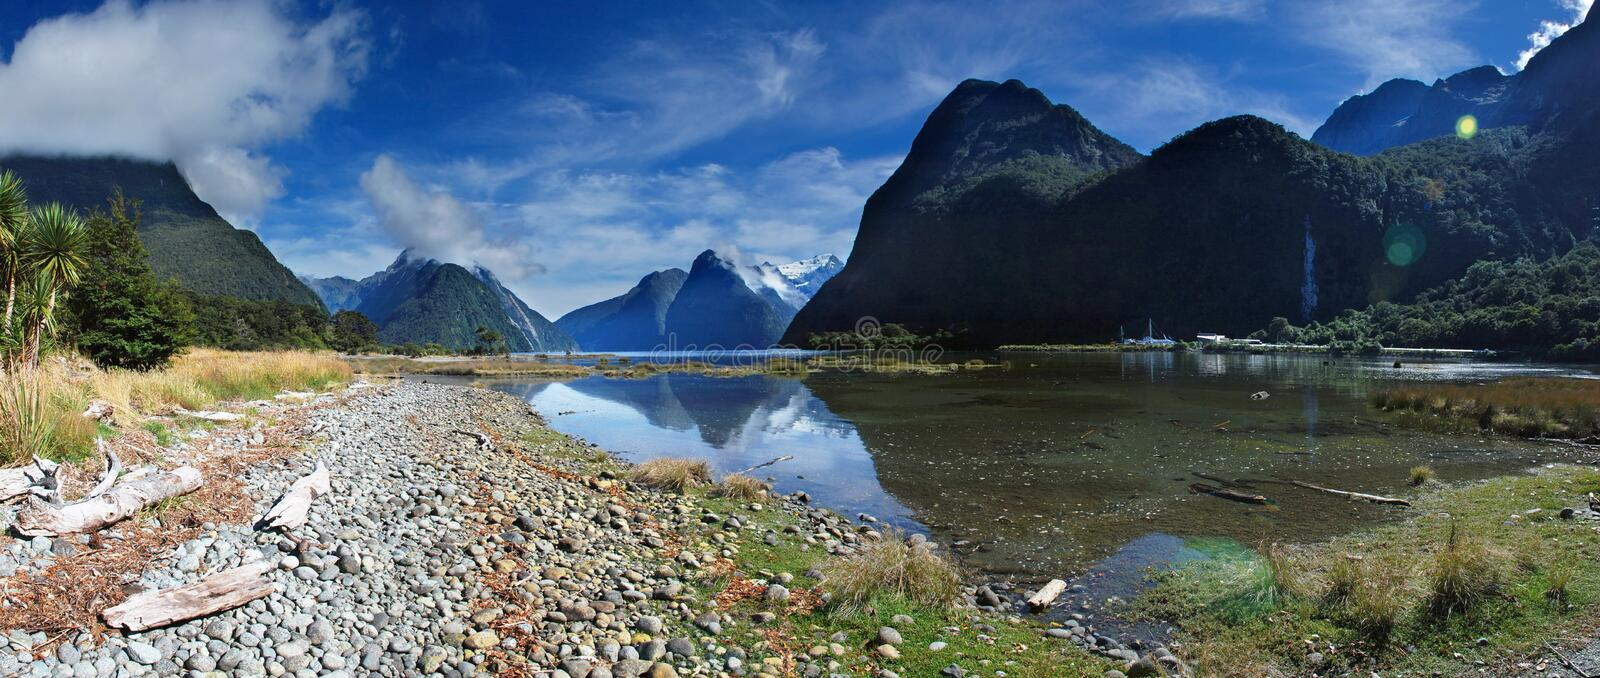 Milford sound. Panoramic view of Milford sound, New Zealand royalty free stock image